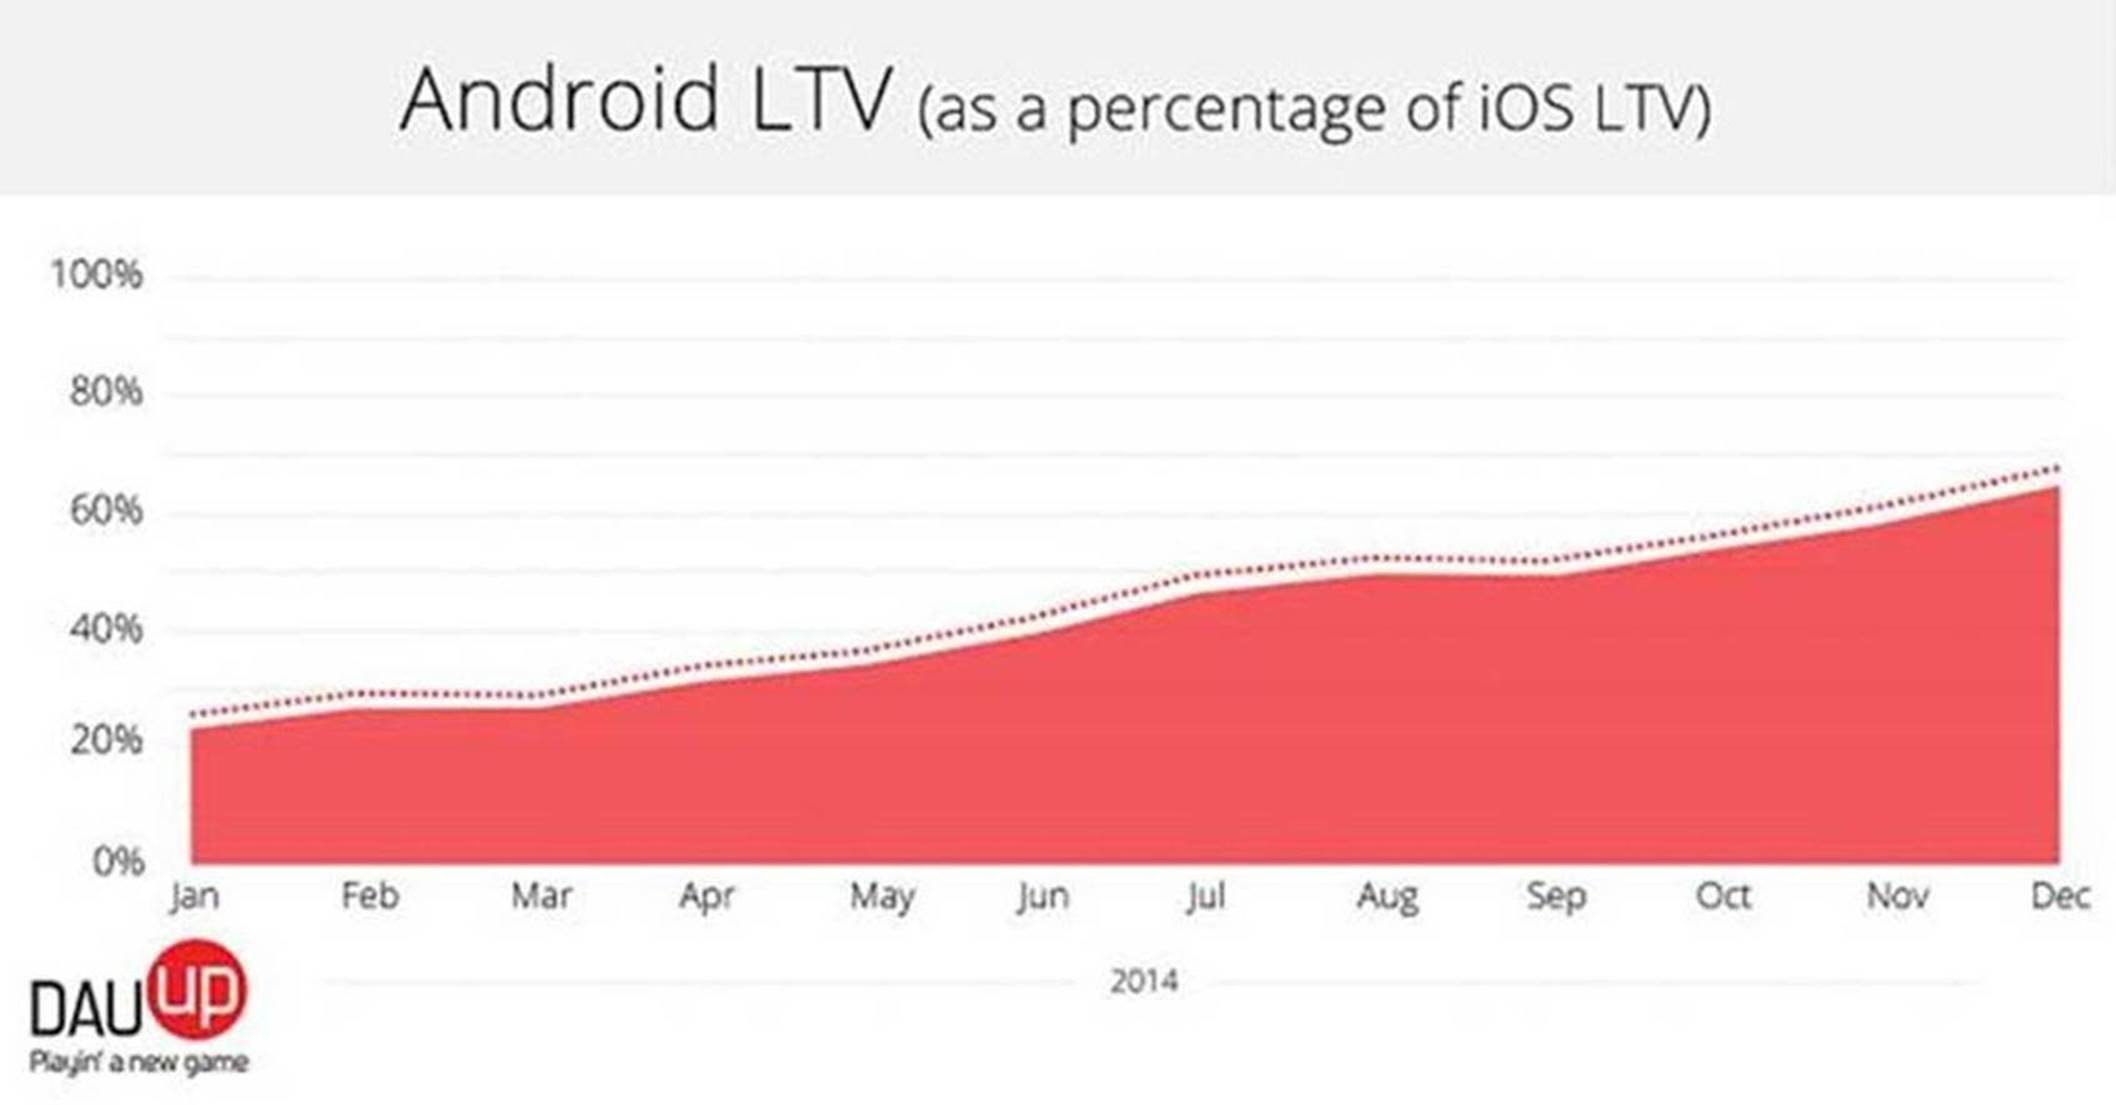 Android LTV compared to iOS (Source DAU up)